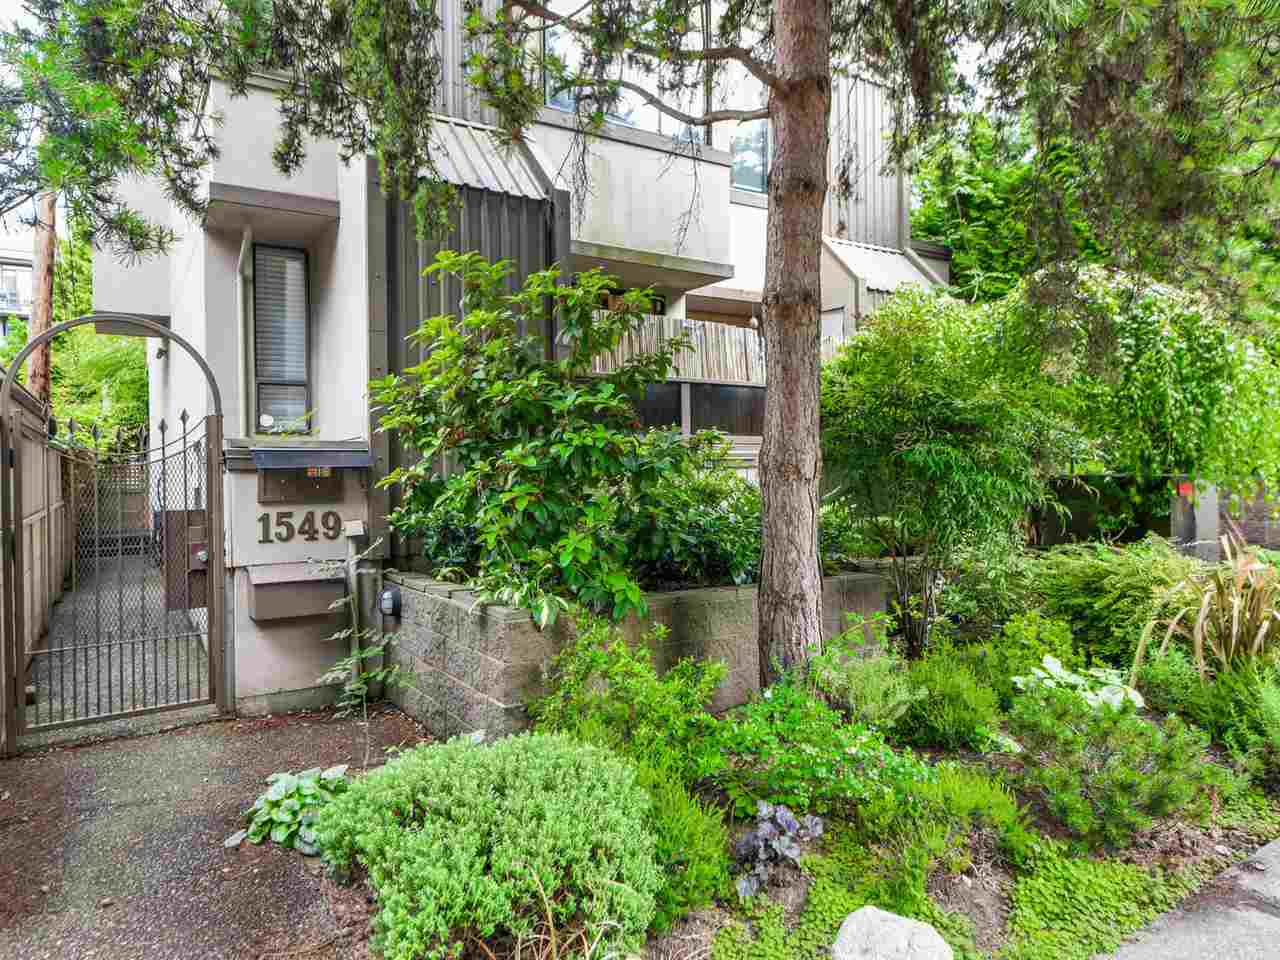 Main Photo: 3 1549 HARO Street in Vancouver: West End VW Townhouse for sale (Vancouver West)  : MLS® # R2089499